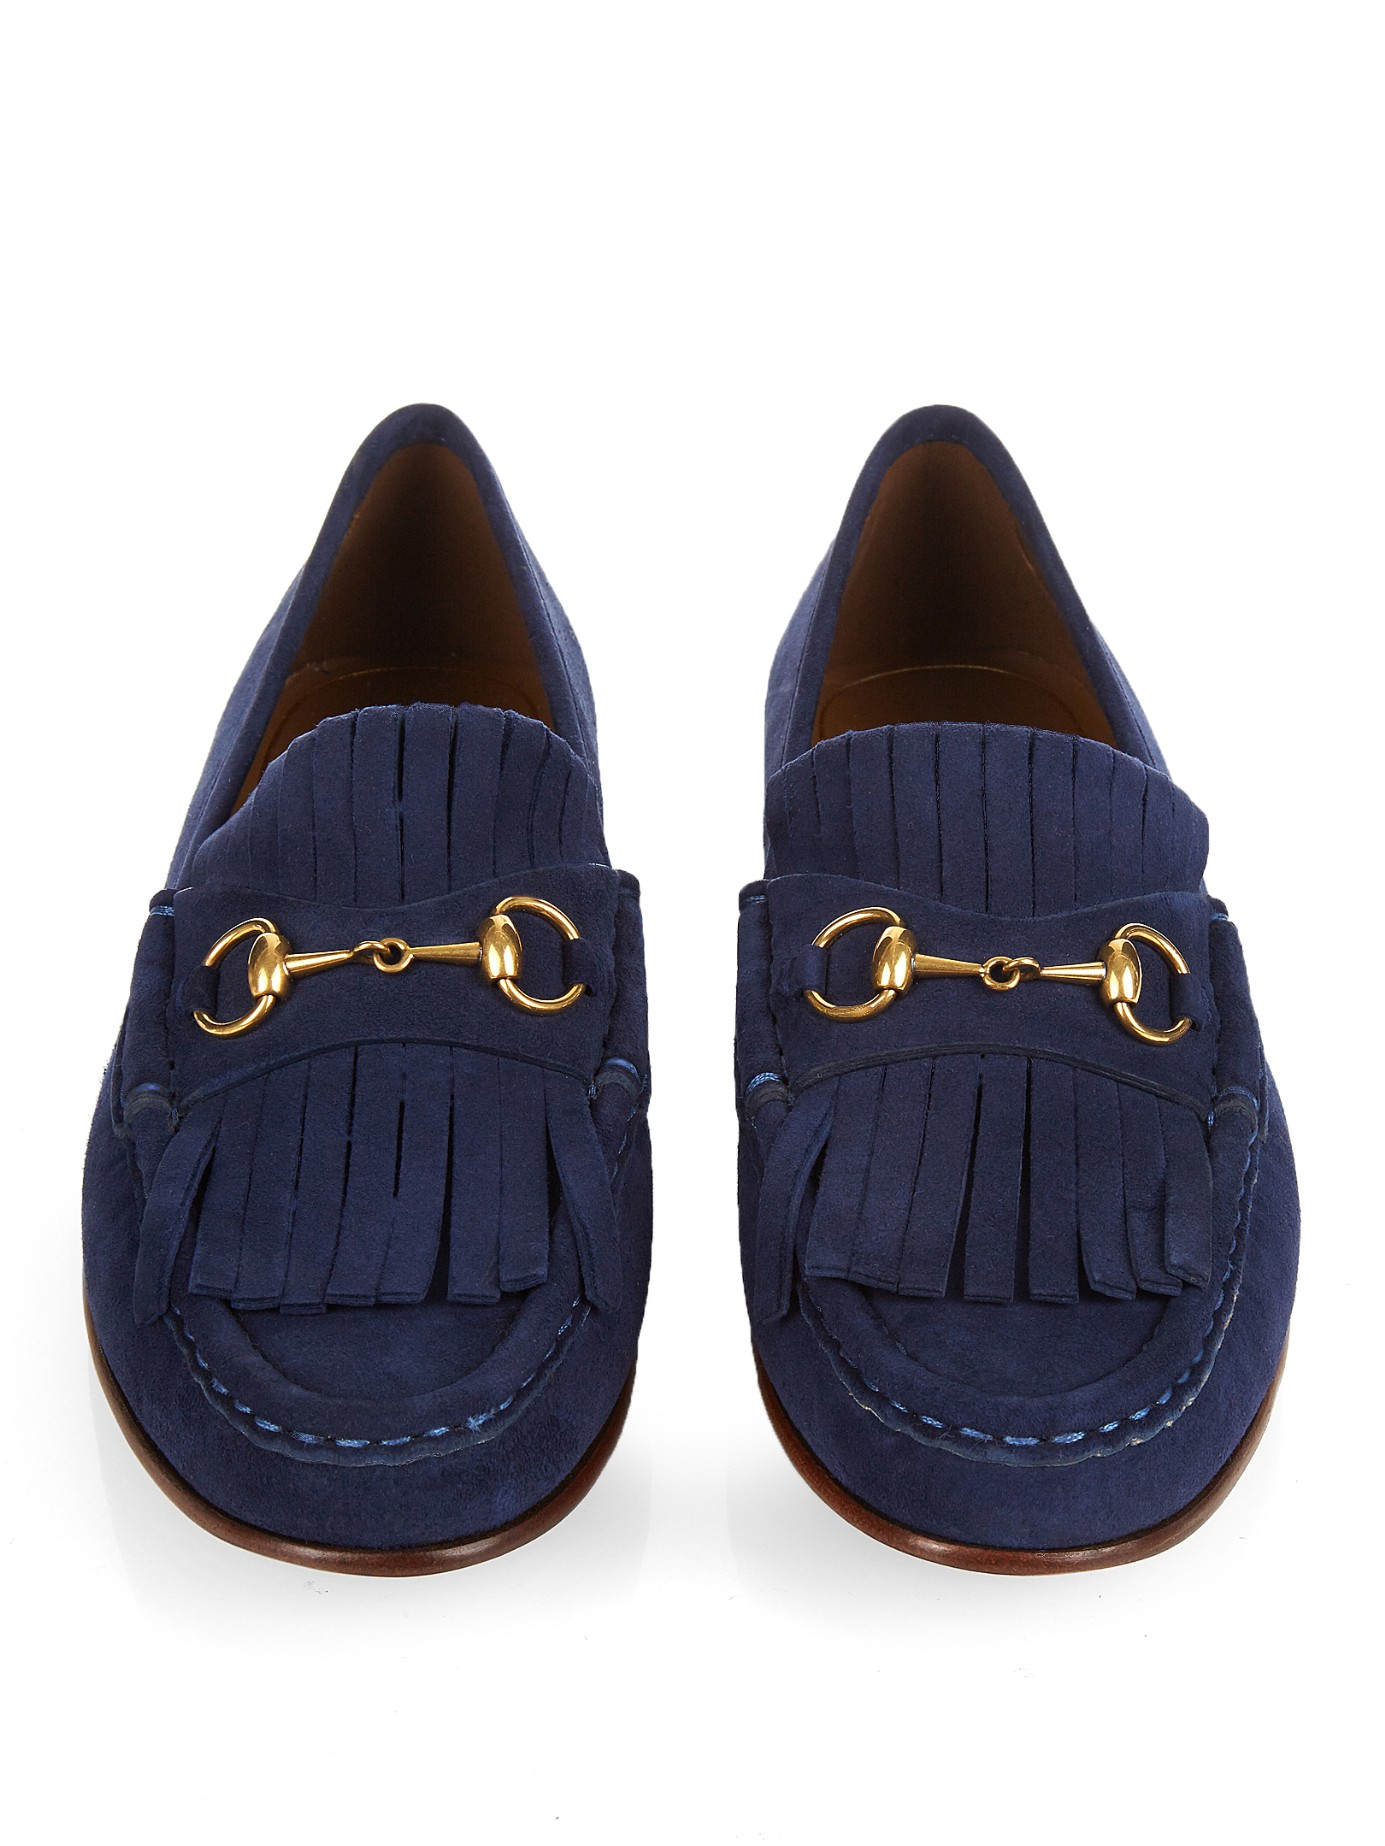 787c35620d4622 Gucci Horsebit Suede Loafers in Blue - Lyst